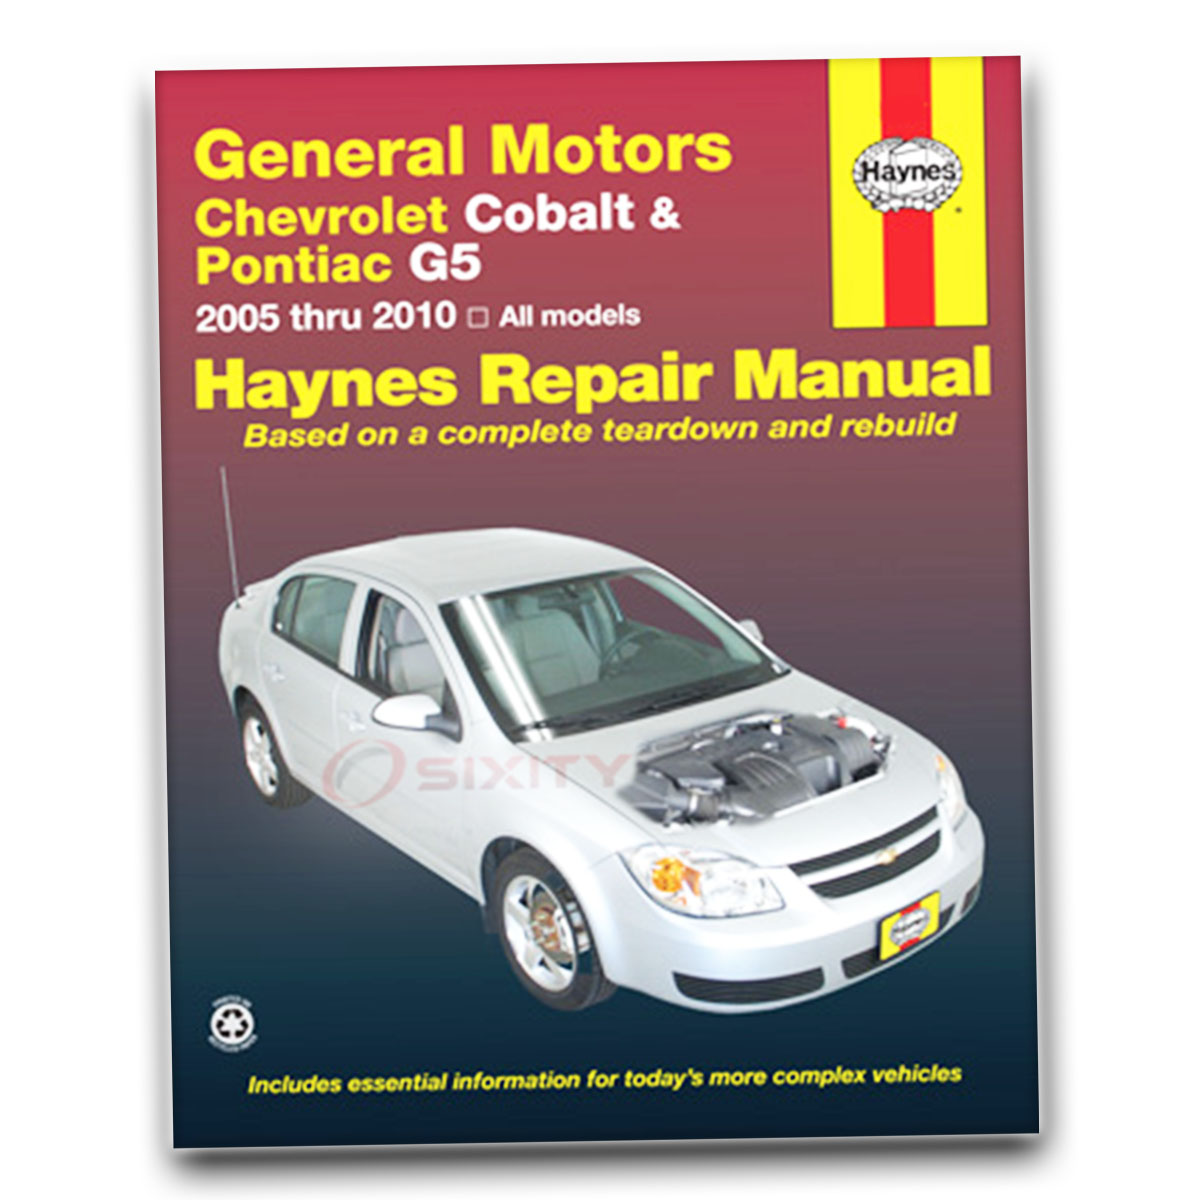 chevy cobalt haynes repair manual ss base ls lt sport ltz shop rh ebay com 2005 Chevy Cobalt 2006 Chevy Cobalt Owner's Manual